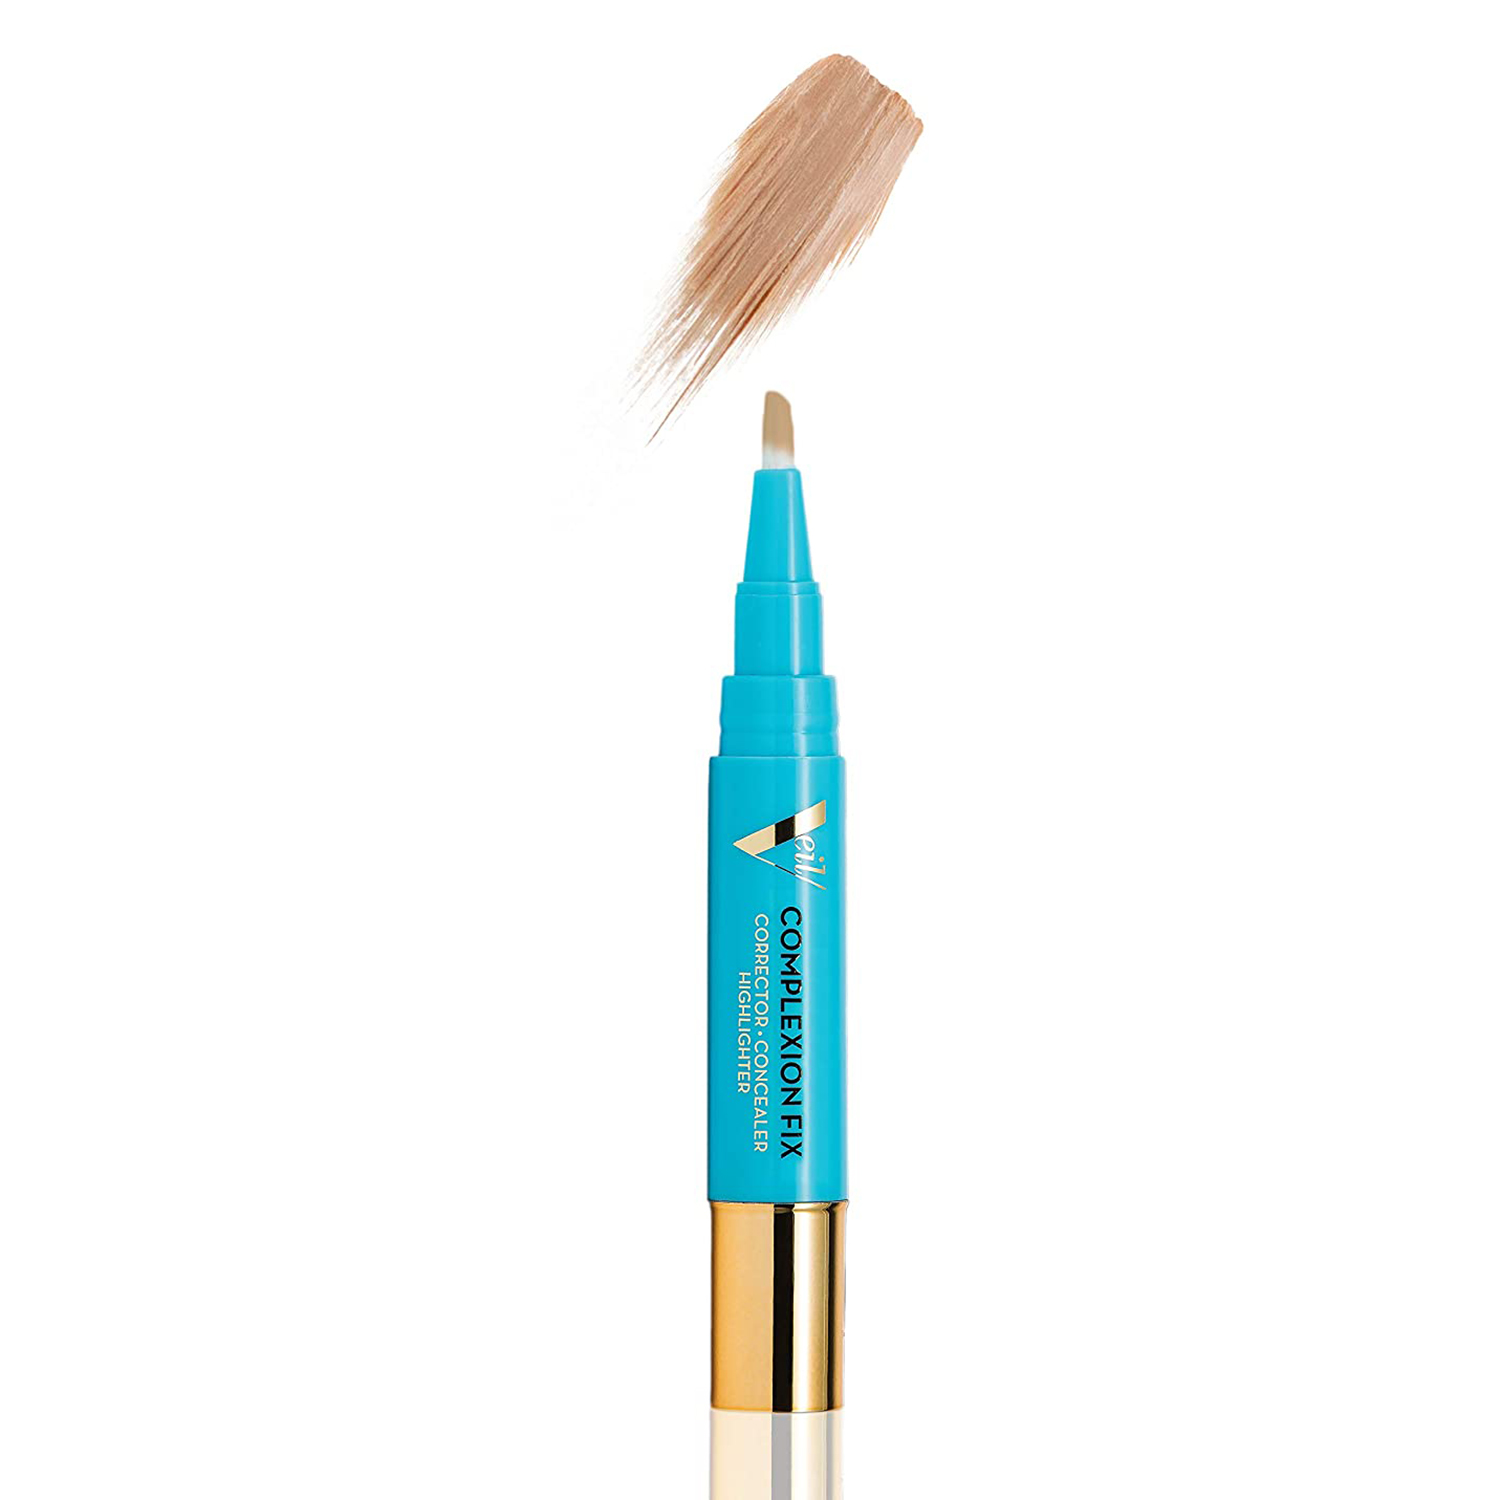 Veil Cosmetics Complexion Fix Oil-Free Concealer, Highlighter